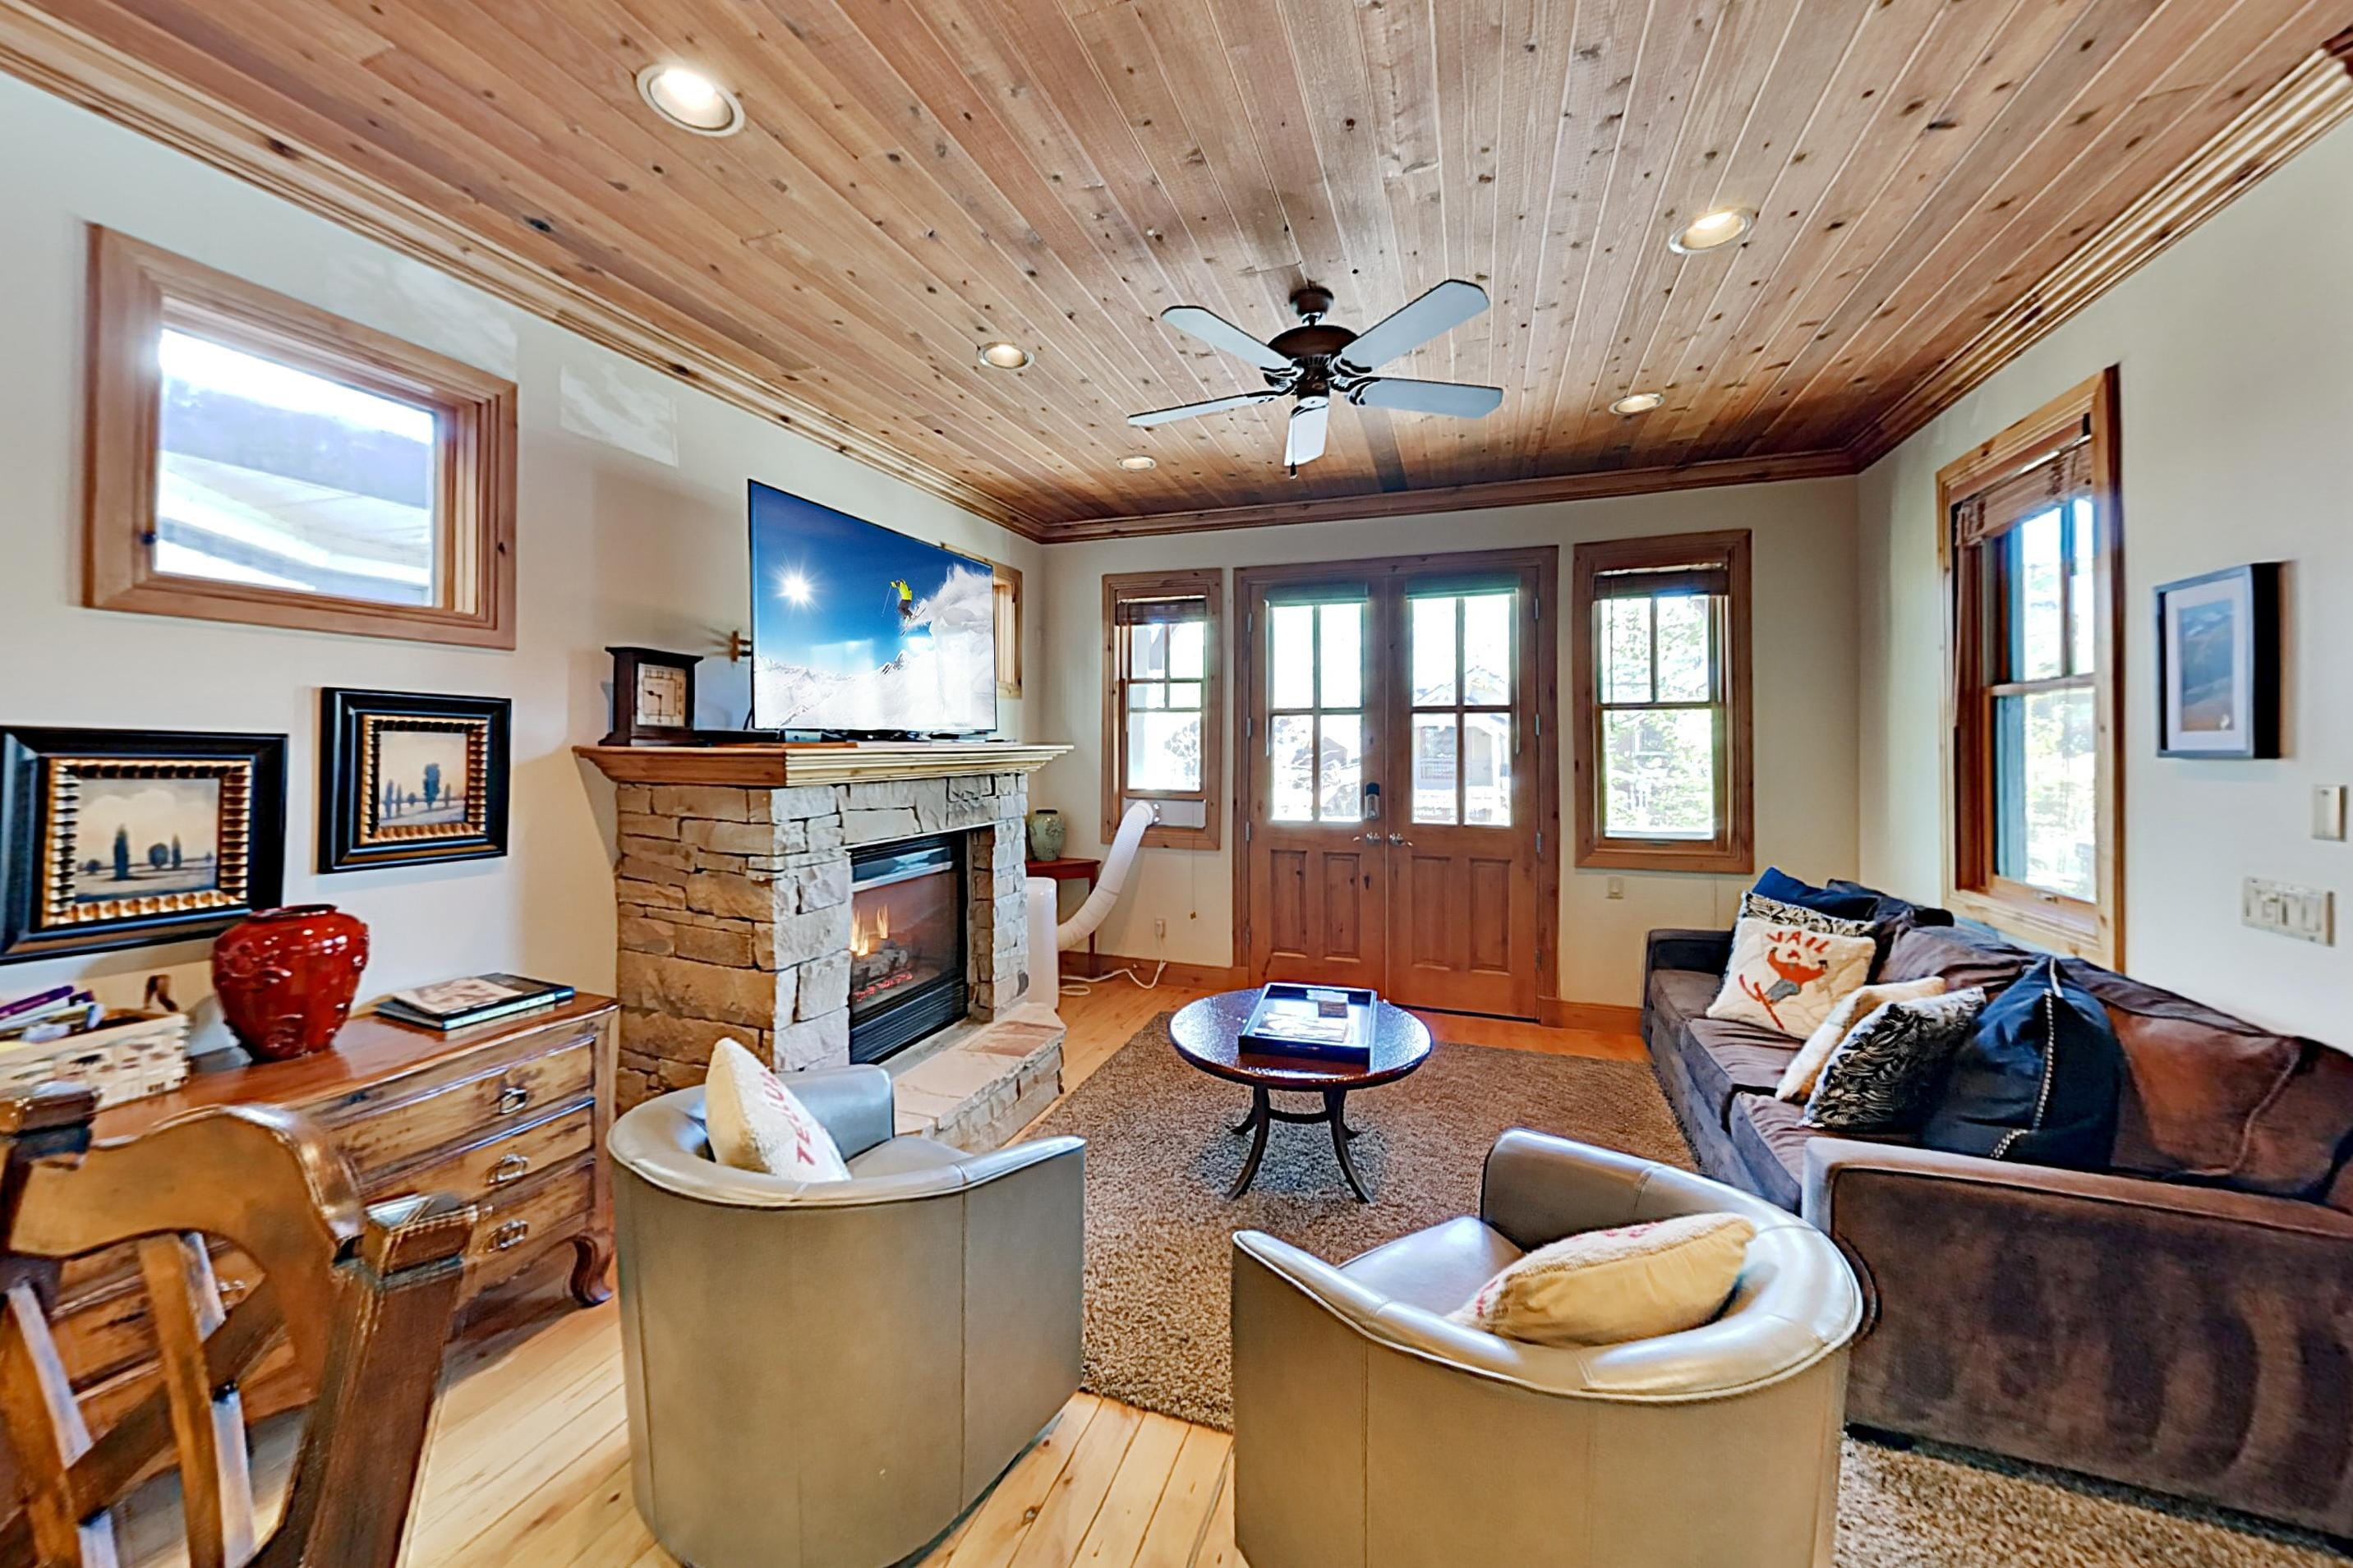 Upscale Gem: Hot Tub & Game Room, Walk to Lifts